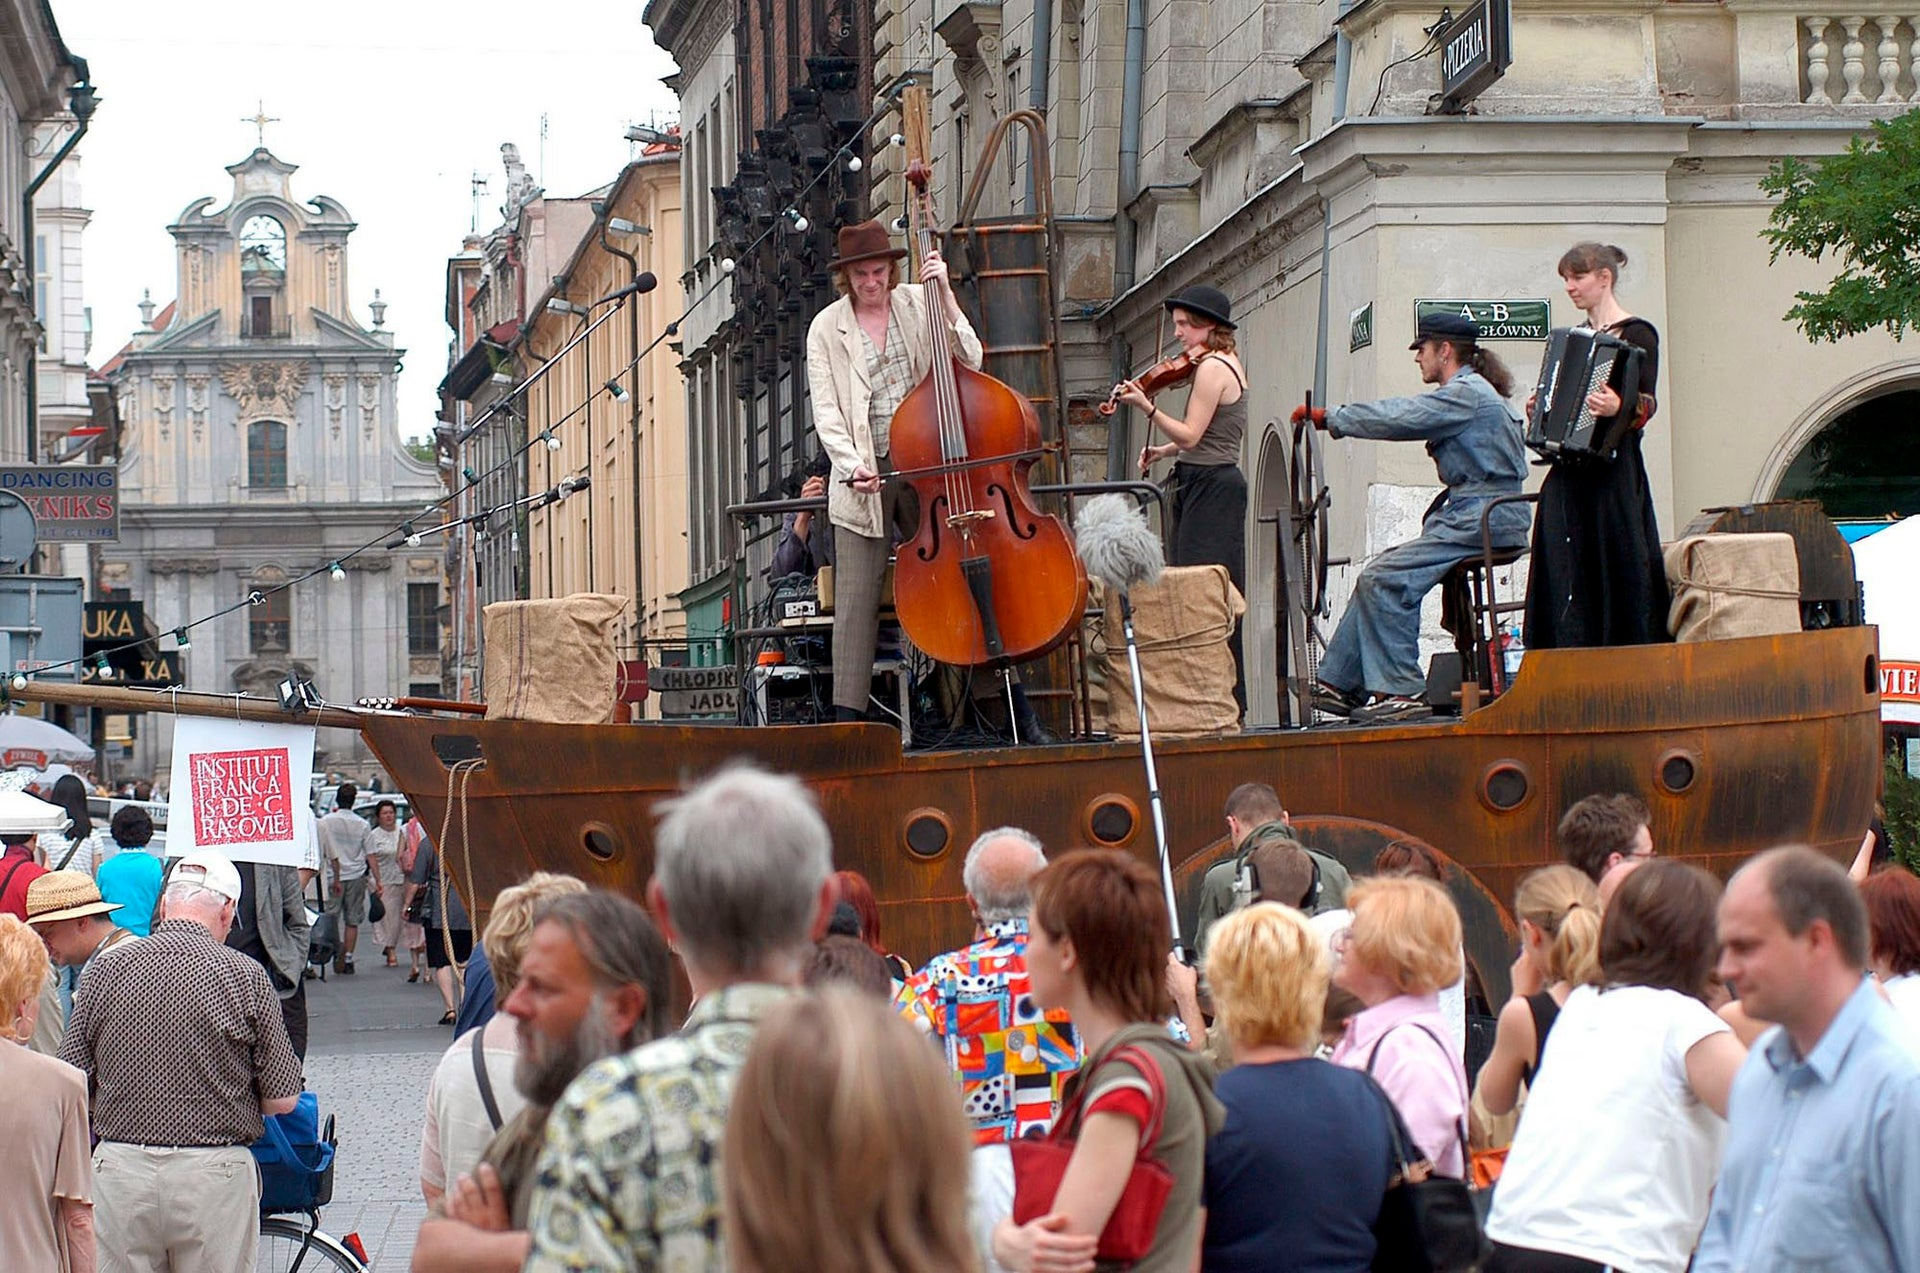 French Klezmer band Beliashe performing in Krakow during the city's Jewish Culture Festival. Over the years, more and more performers have come from Israel.